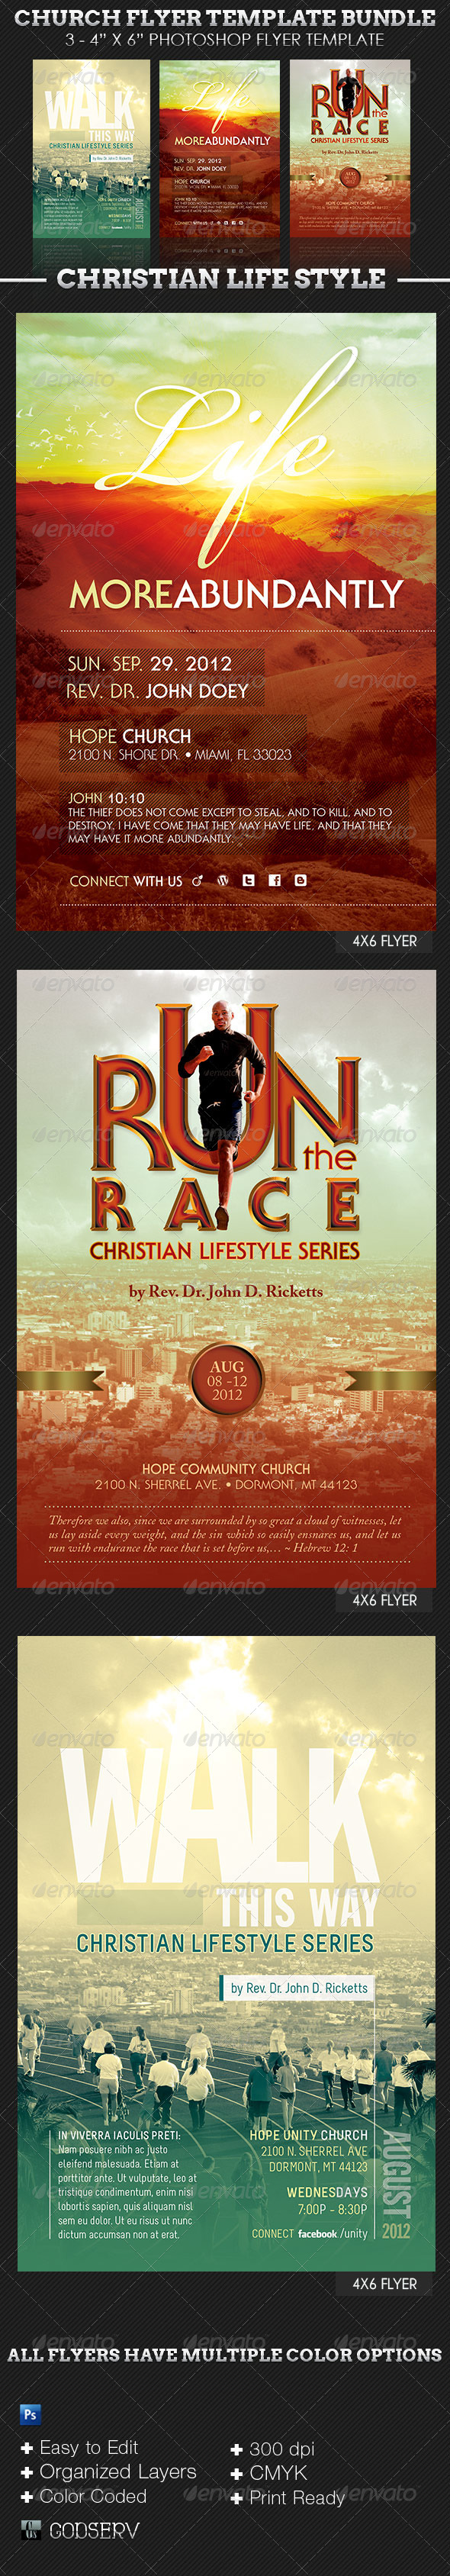 Church Flyer Template Bundle: Christian Lifestyle - Church Flyers